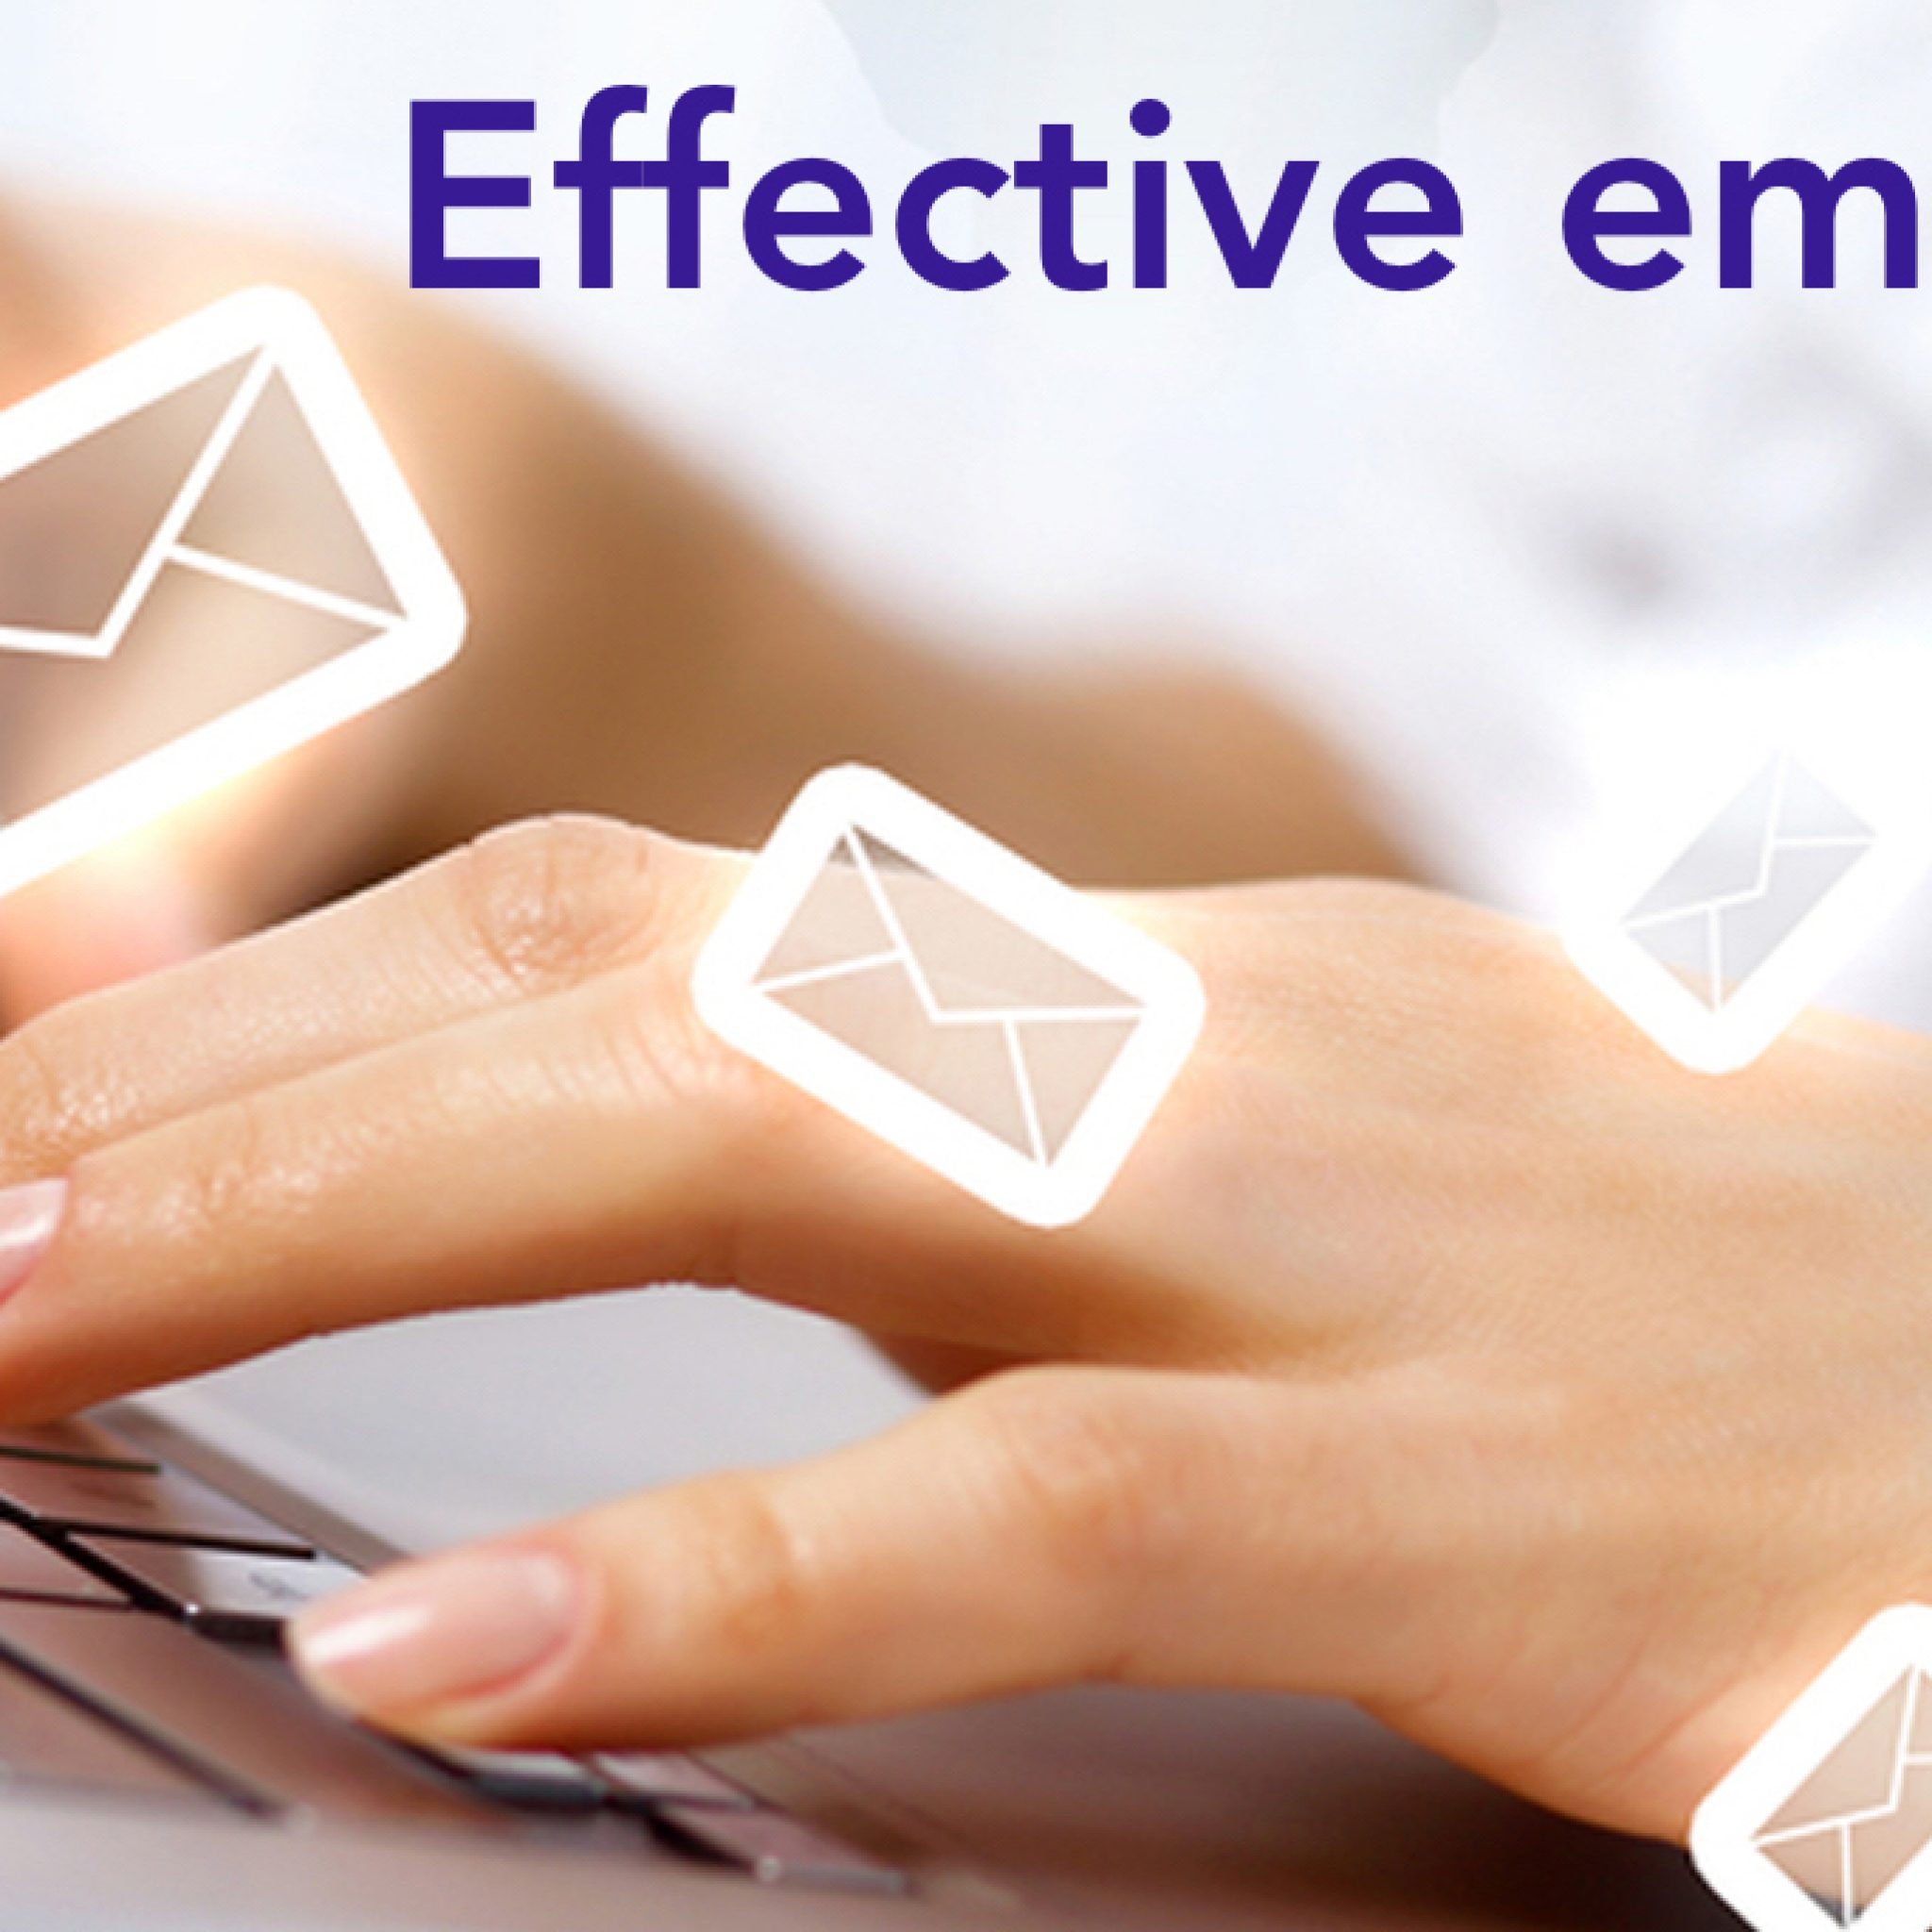 Effective email tips for business